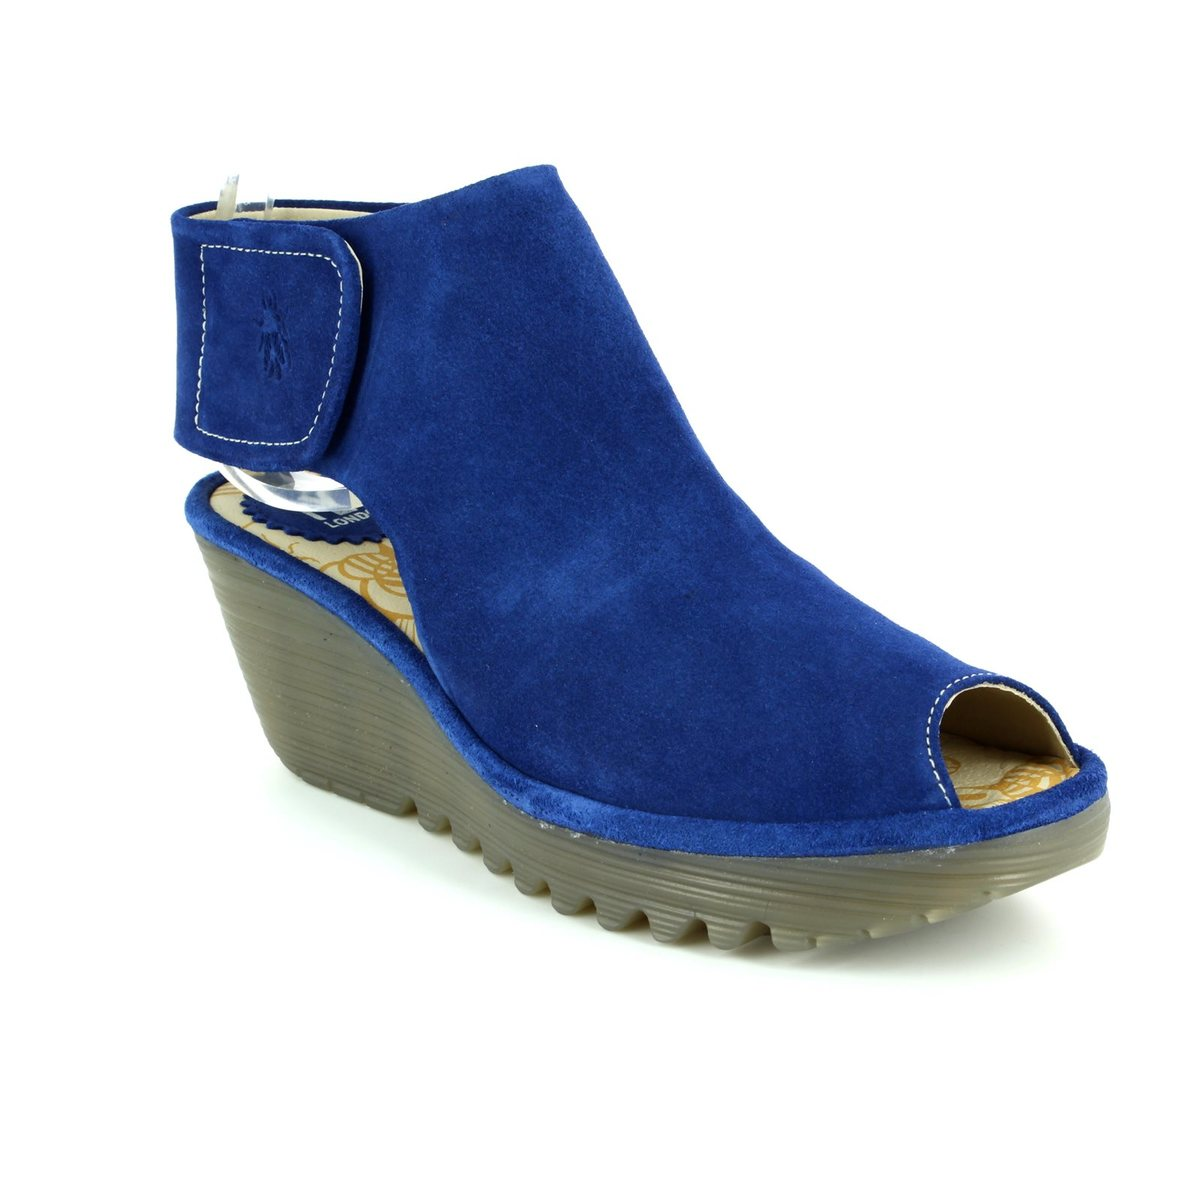 a8767ecbd11 Fly London Yona P500642-012 Blue Wedge Sandals